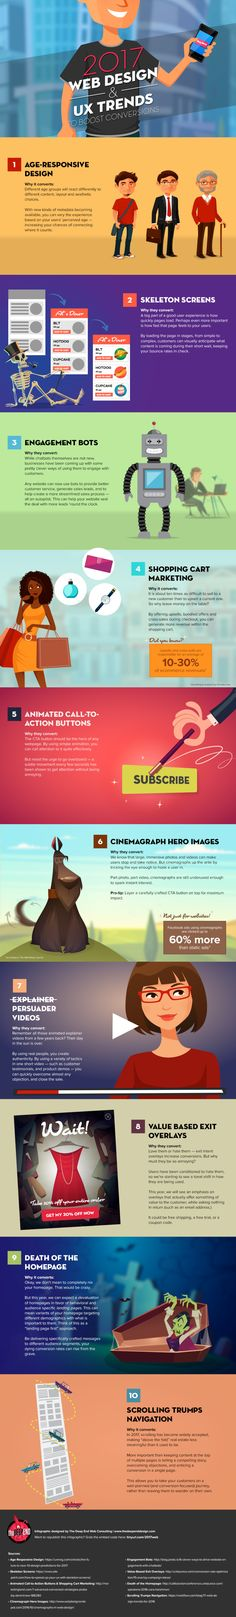 What Are 10 Web Design And UX Trends To Boost Conversions In 2017? #infographic